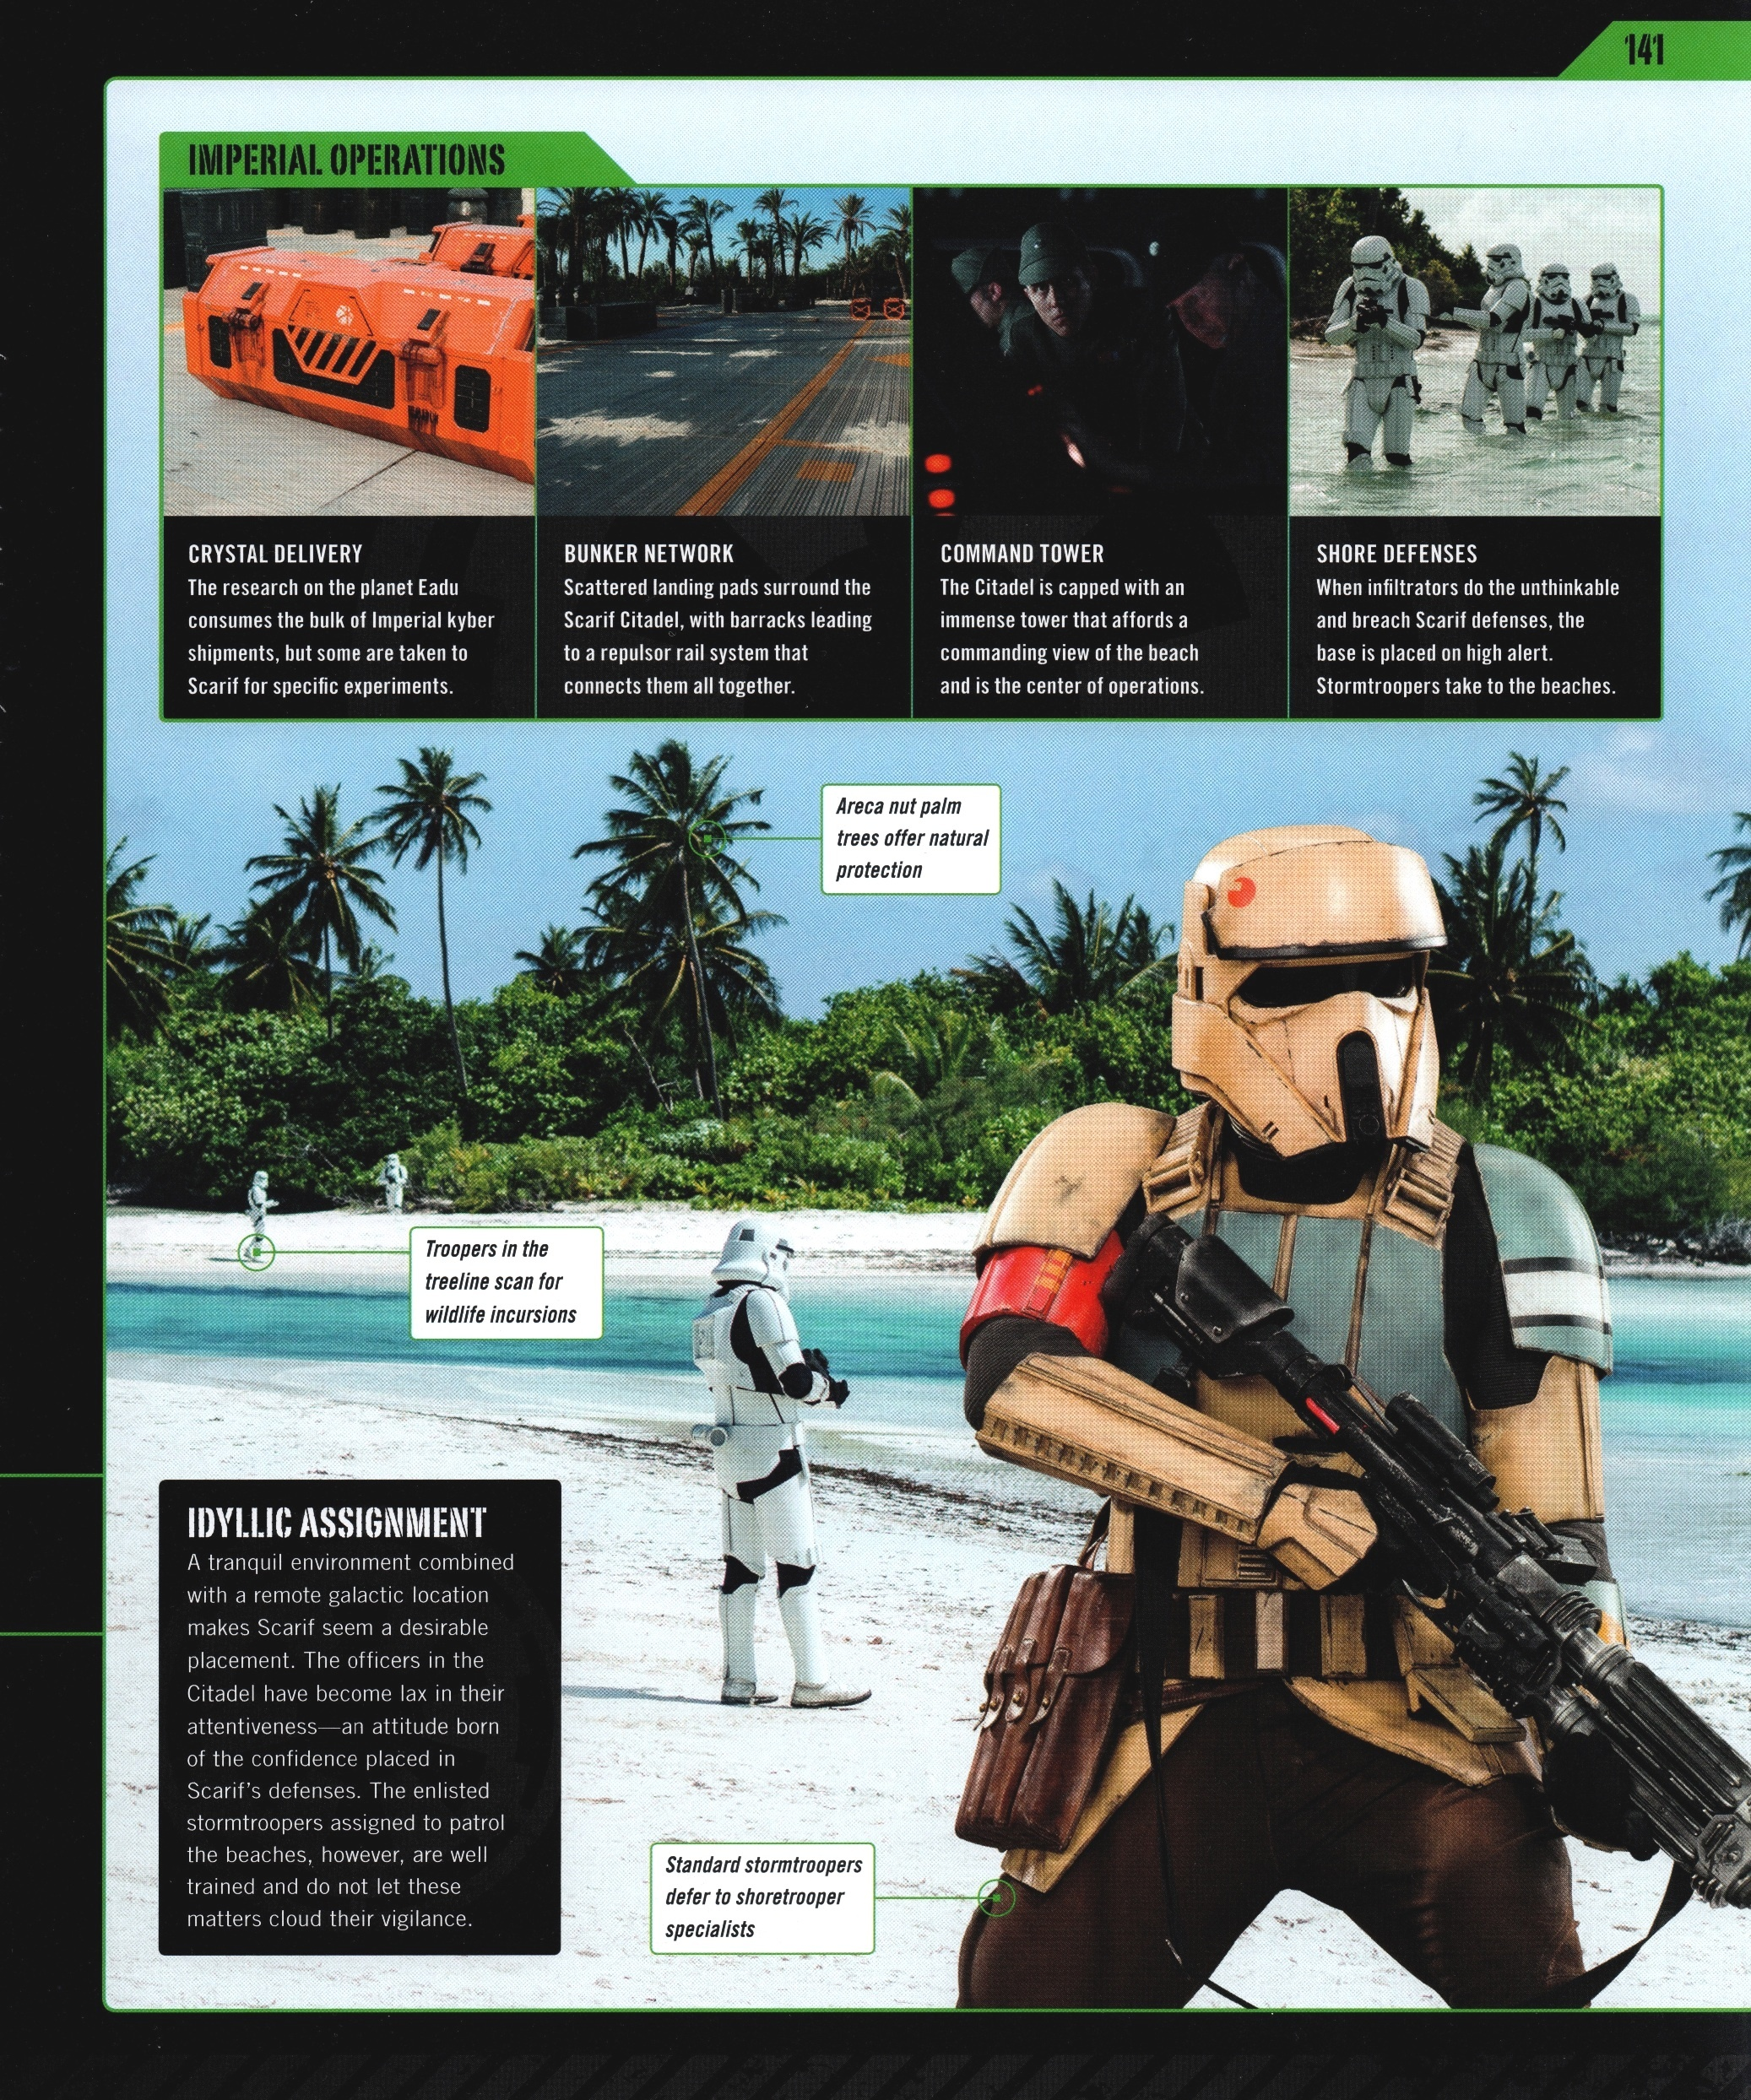 Rogue One Ultimate Visual Guide (b0bafett_Empire) p141